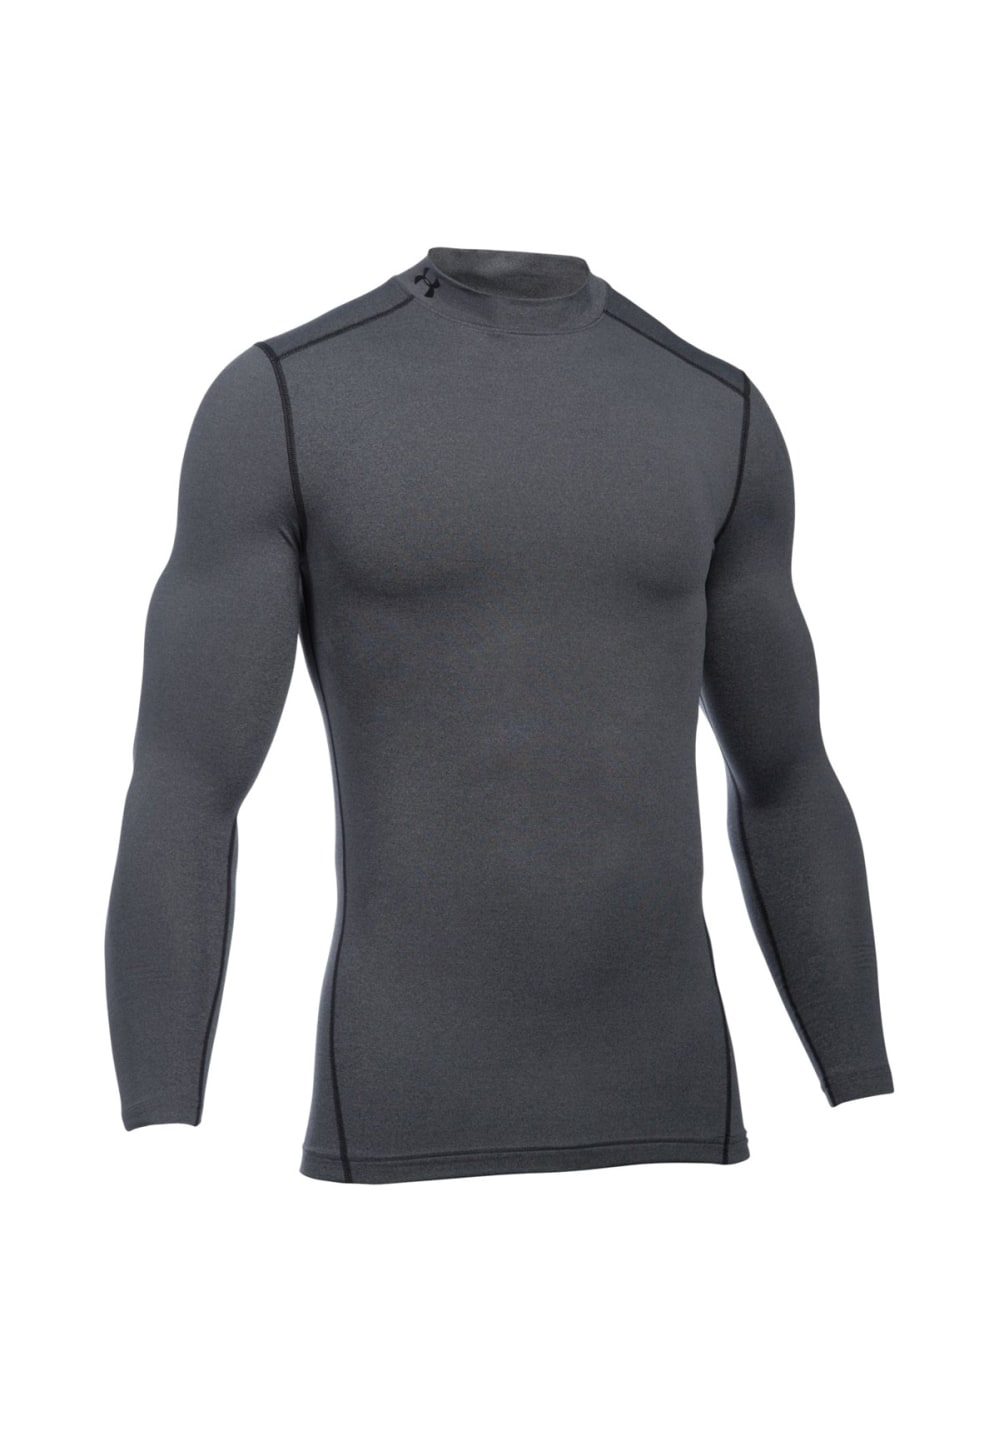 Under Armour ColdGear Armour Mock - Kompression für Herren - Schwarz